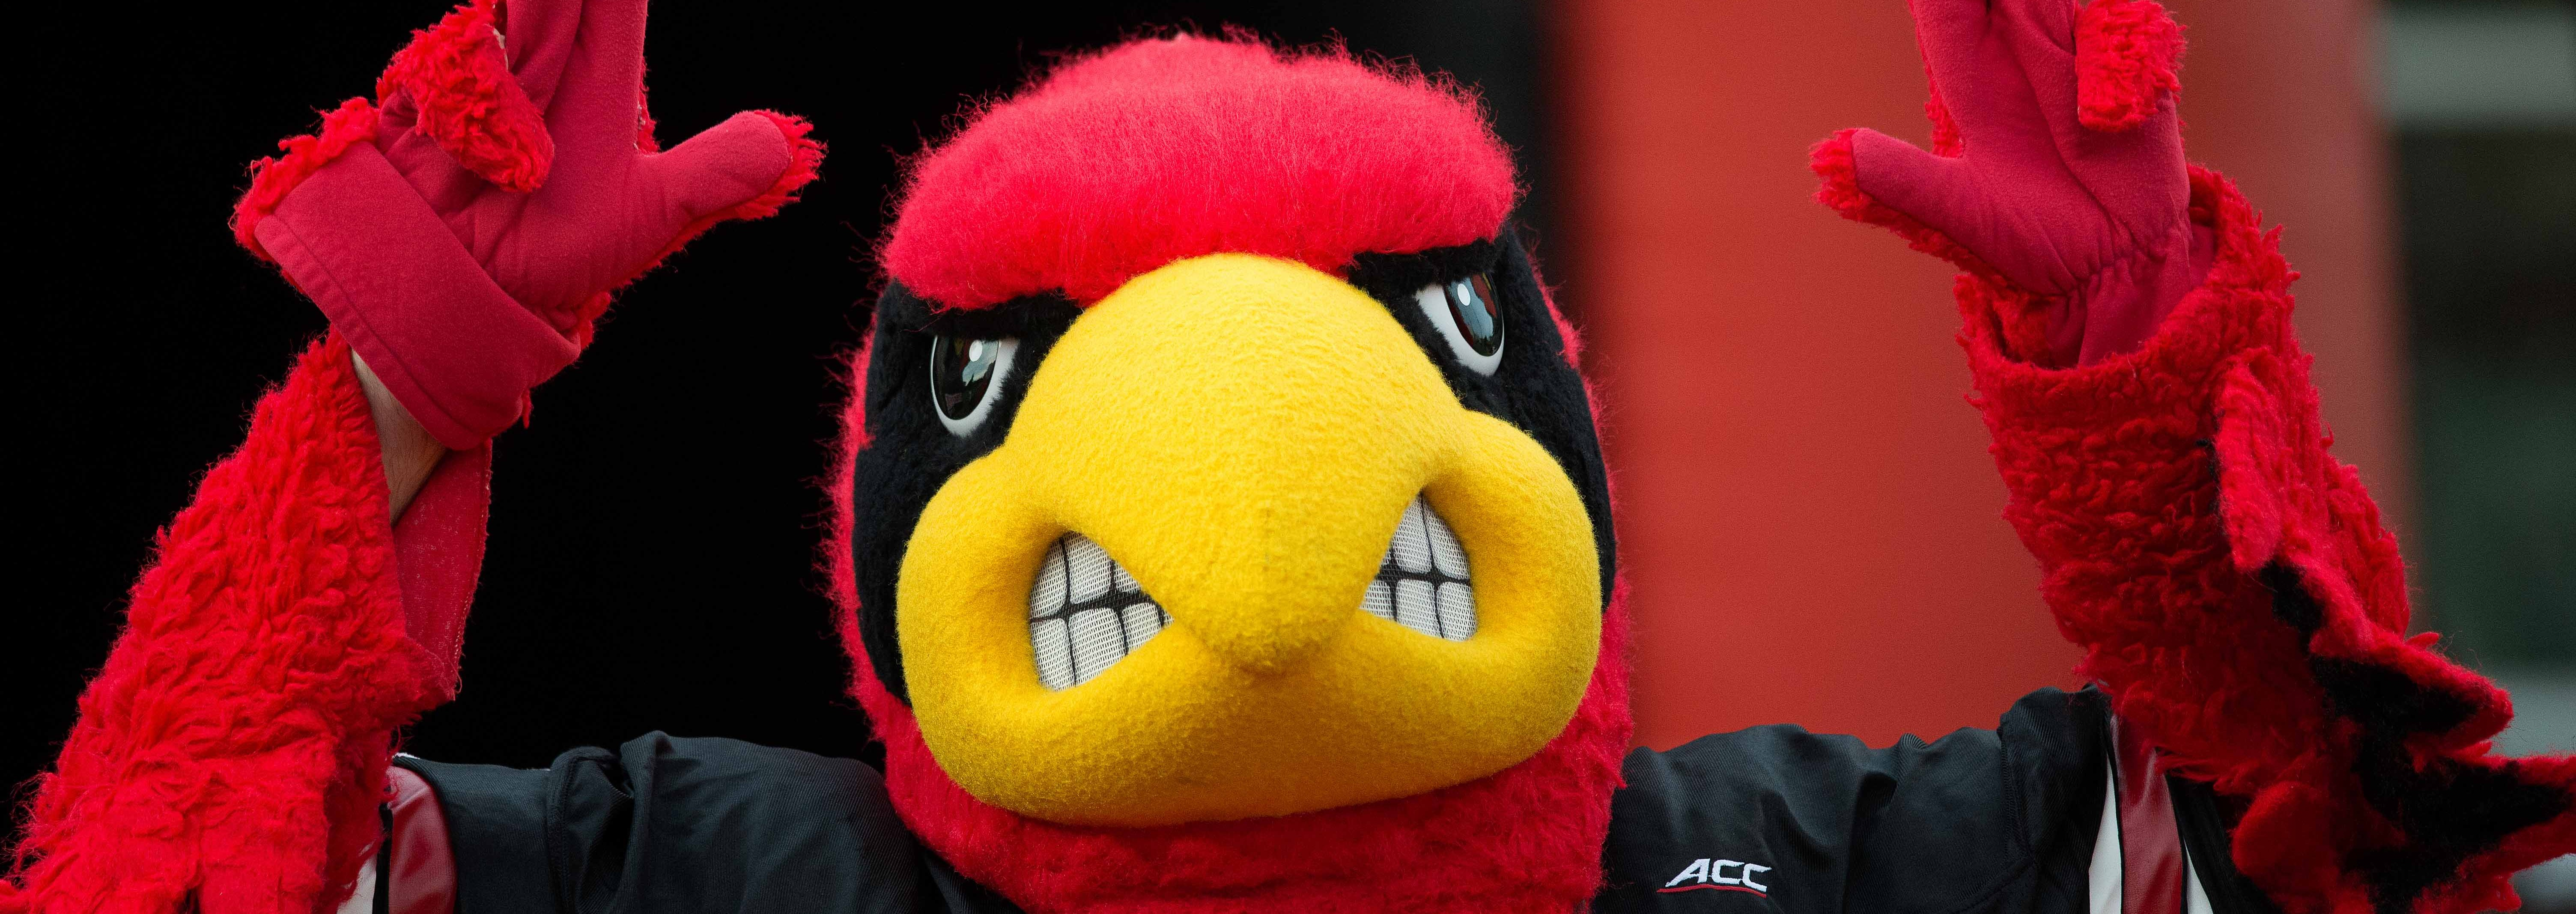 Louie the Cardinal, Cardinal Bird 2015 Louisville Spring Game 4-17-2015 Photo by Adam Creech Fitted